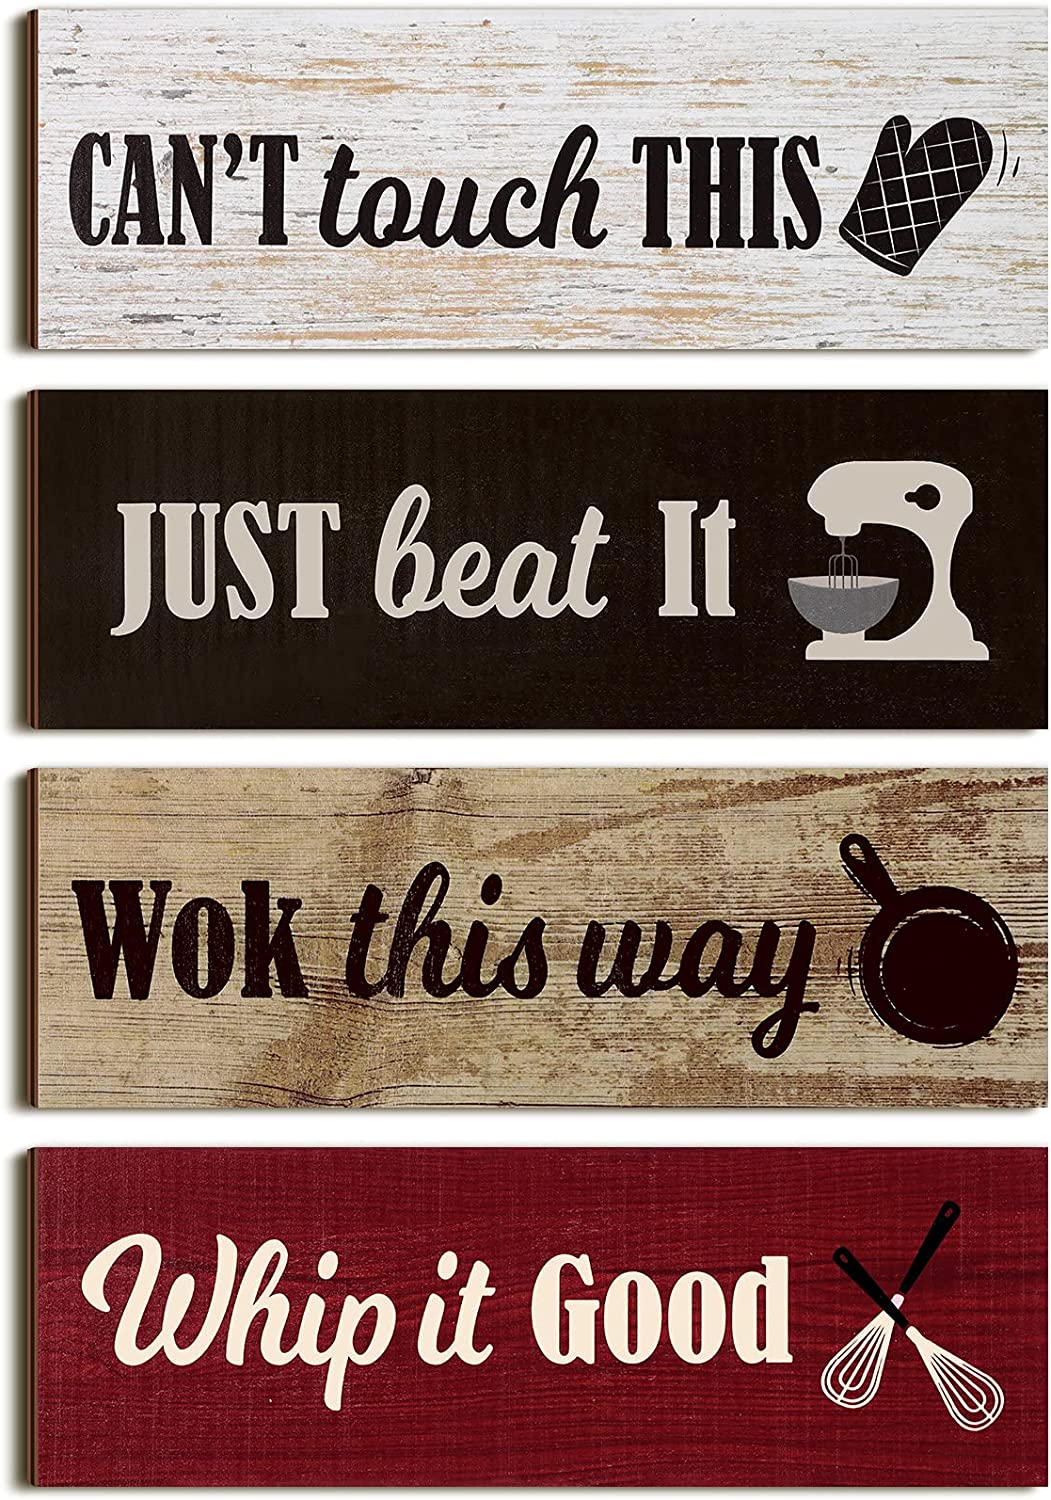 4 Pieces Rustic Kitchen Sign Rustic Wood Wall Sign Kitchen Wall Signs Decor Red Black Brown and White Baking Prints Signs Family Sign Farmhouse Hanging Wooden Signs for Home Kitchen, 11.8 x 3.9 Inch